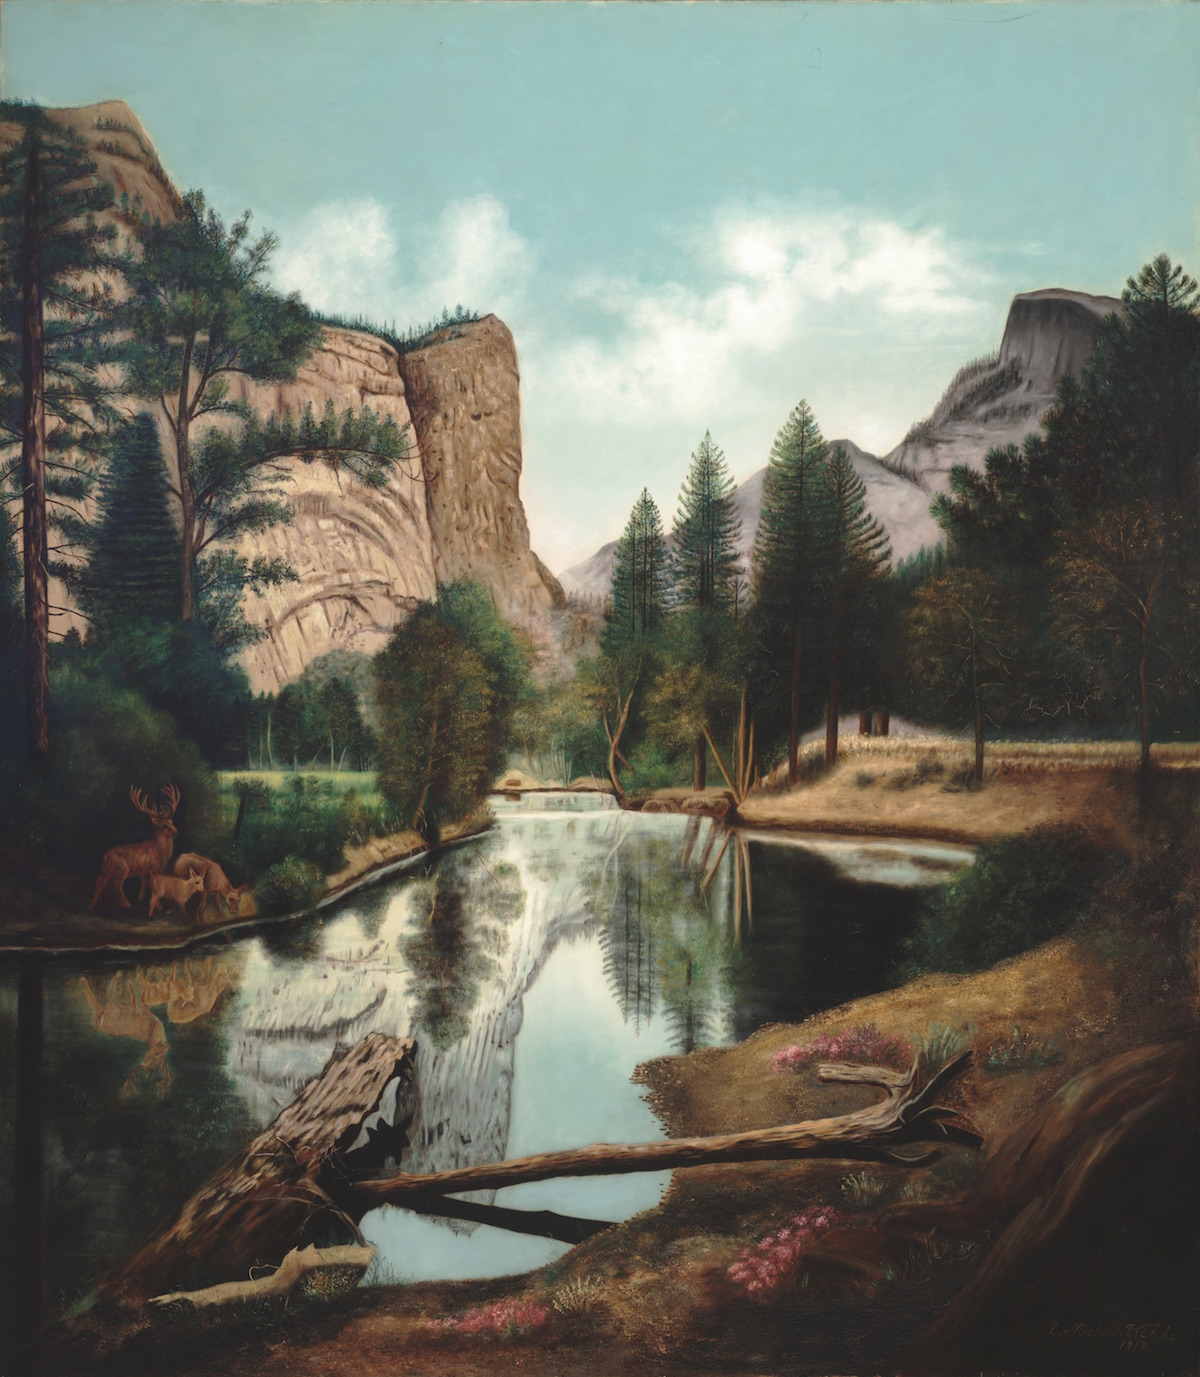 Emma Michalitschke: Yosemite Landscape, 1913; oil on canvas; 50 x 44 in.; University of California, Berkeley Art Museum and Pacific Film Archive; Gift of Emma Michalitschke.